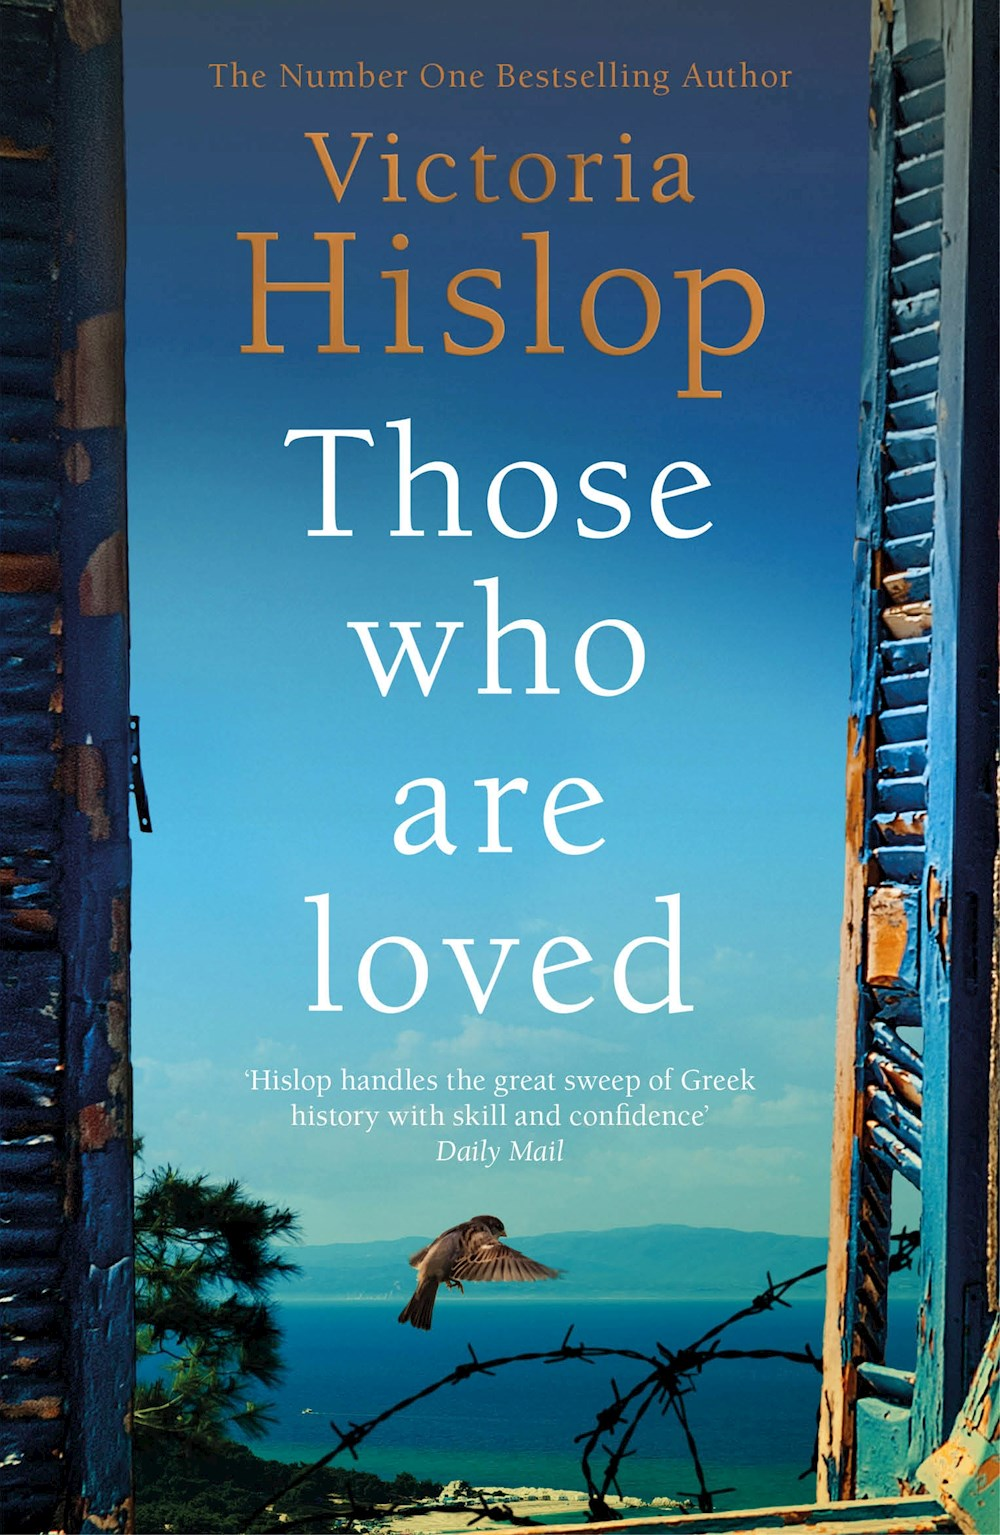 An Evening with Victoria Hislop